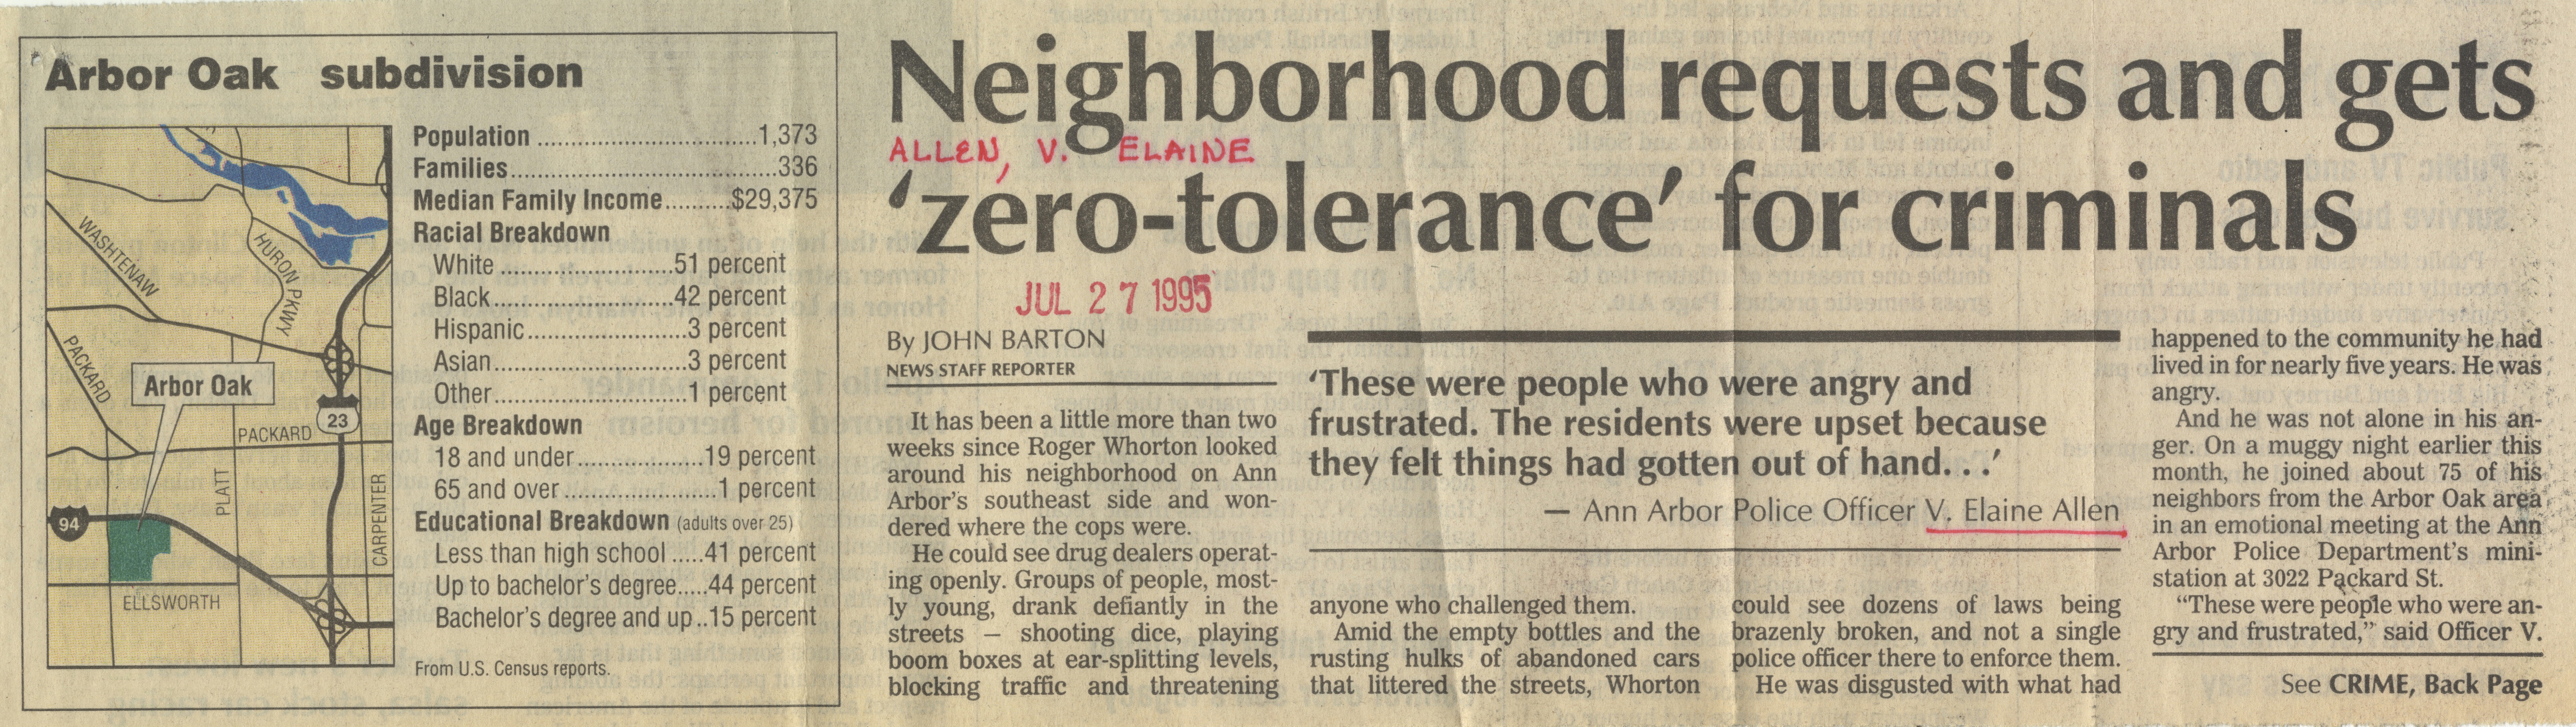 Neighborhood Requests And Gets 'Zero-Tolerance' For Criminals image